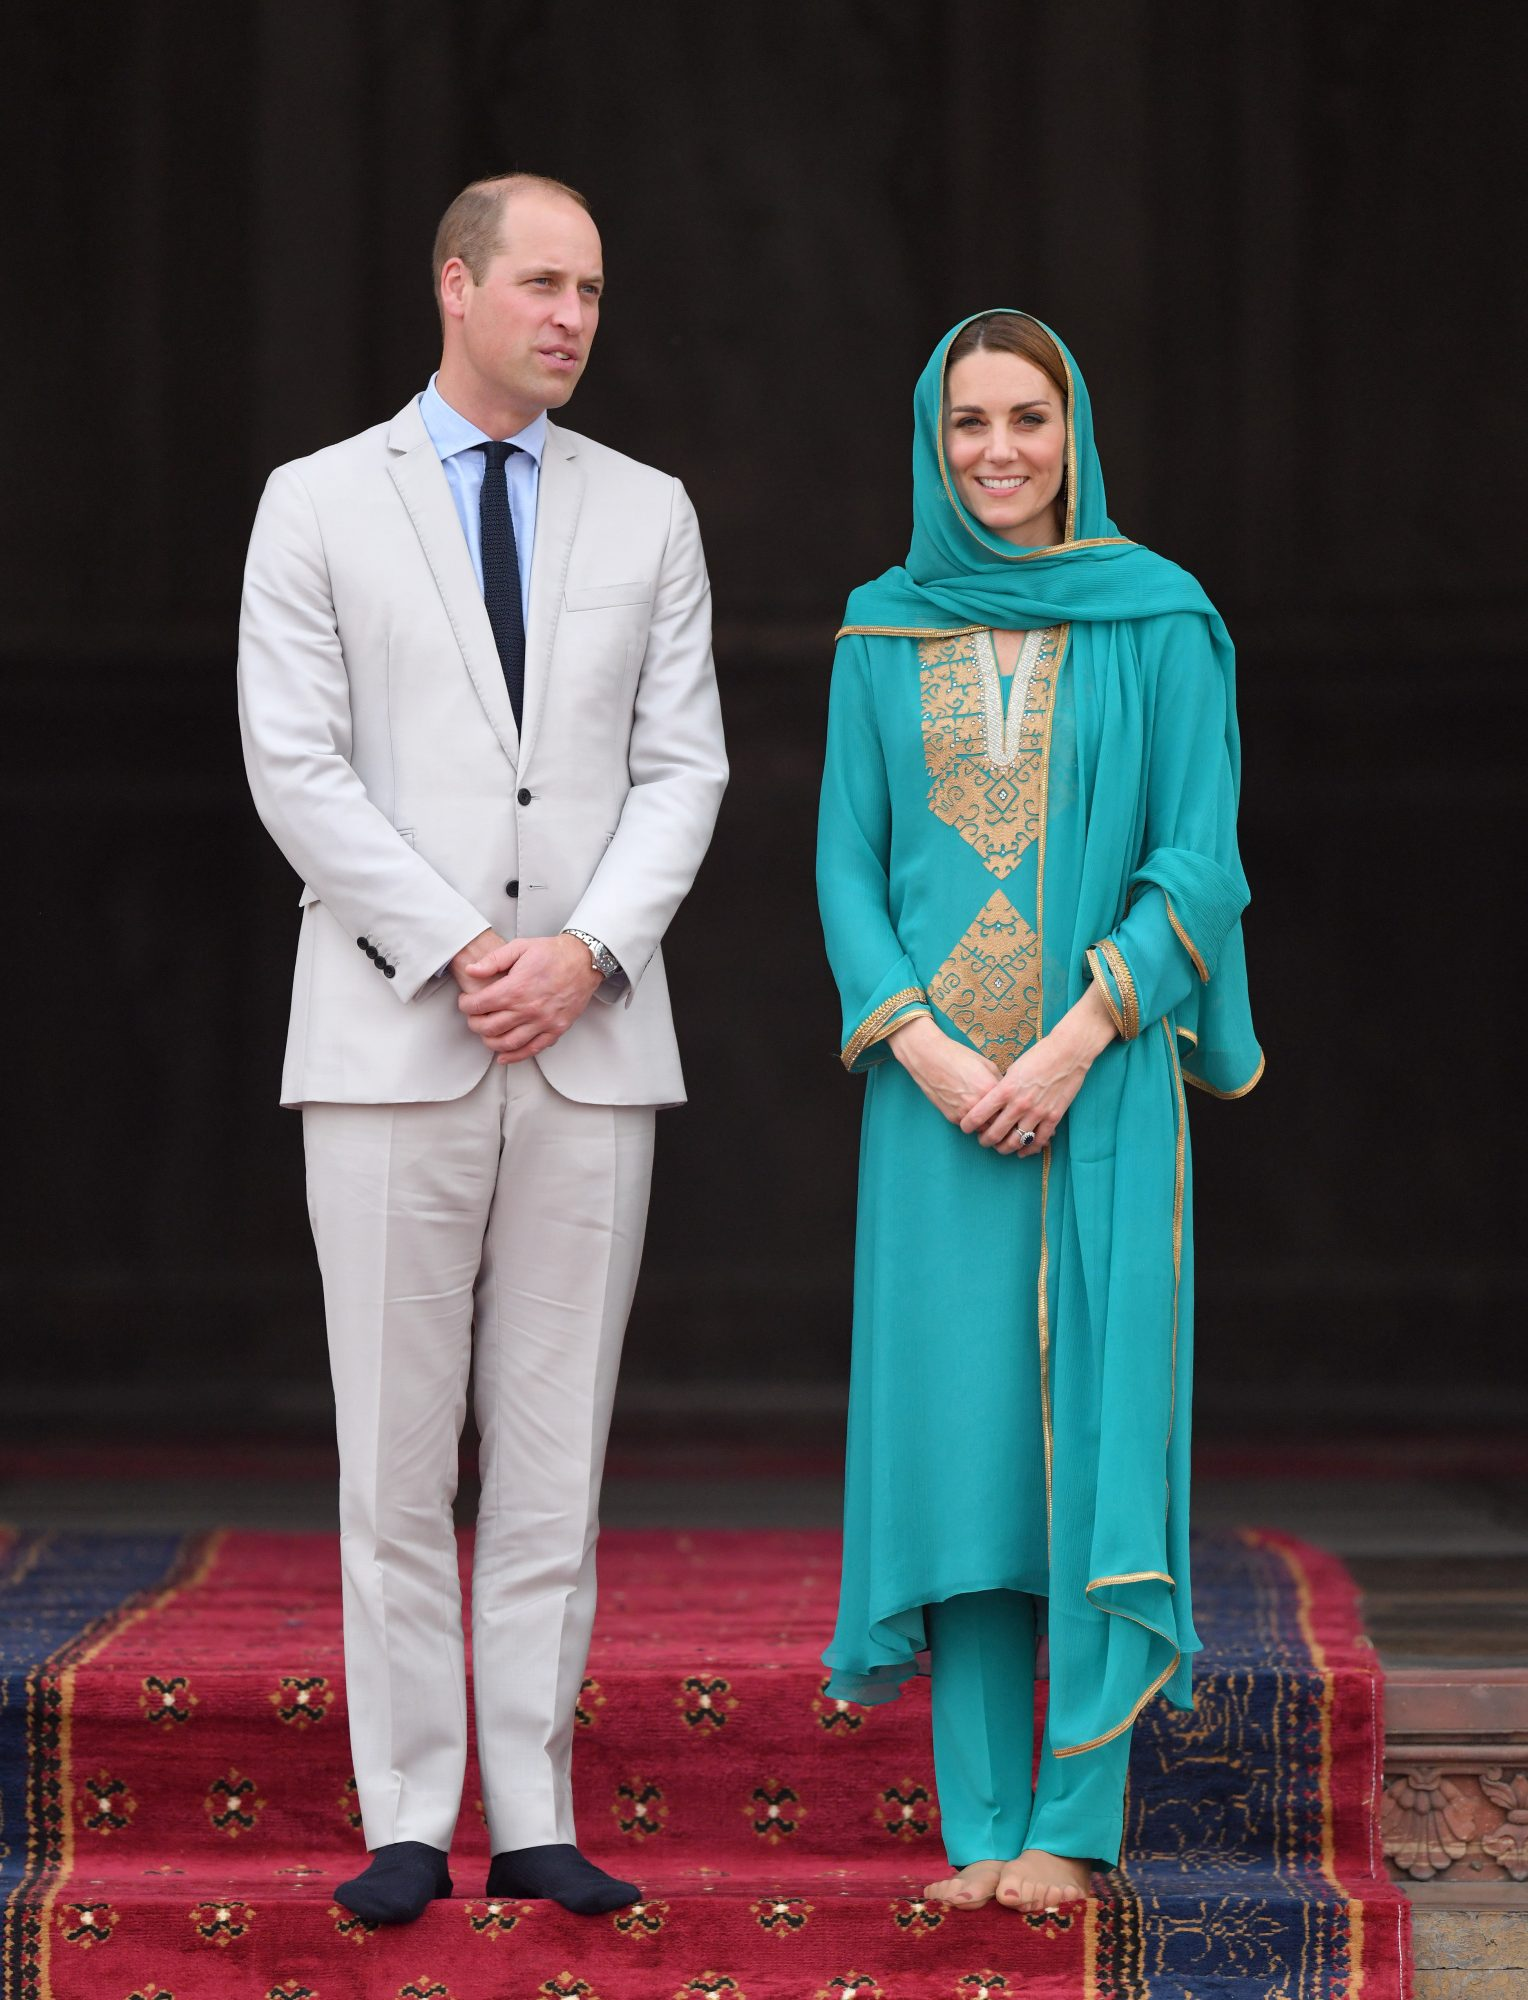 Kate Middleton Went Barefoot and Wore a Headscarf While Visiting a Pakistani Mosque